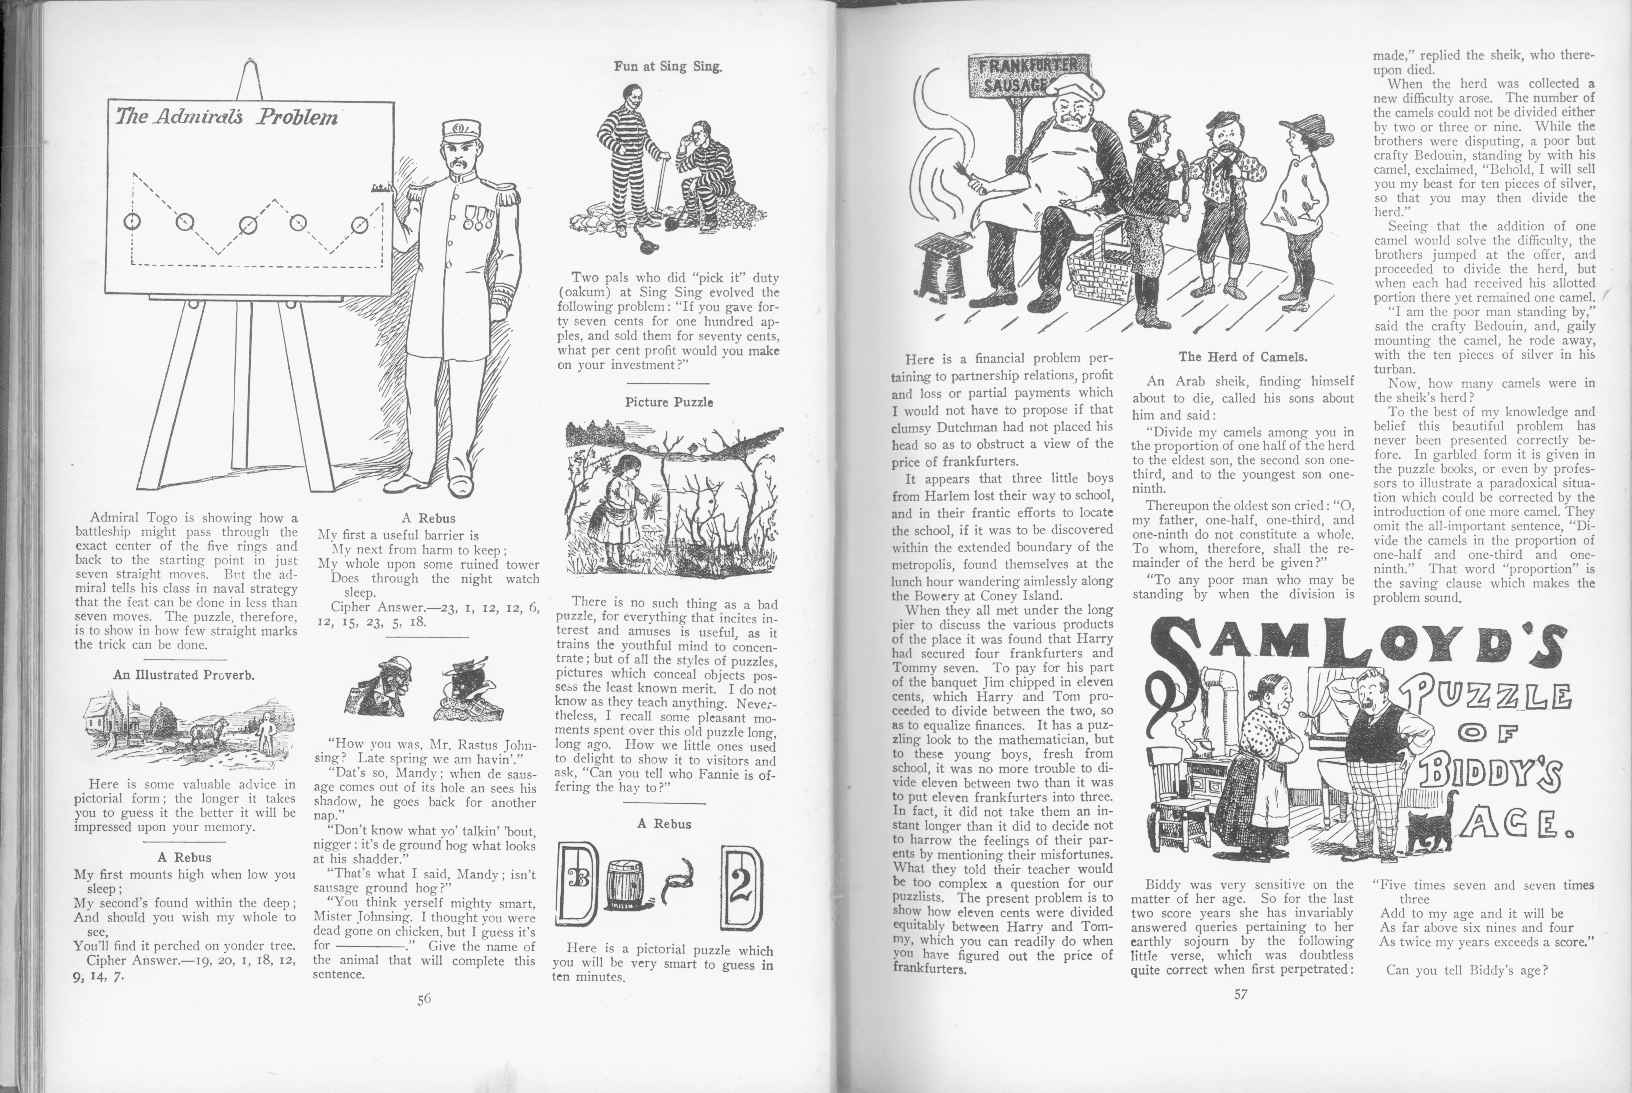 Sam Loyd - Cyclopedia of Puzzles - page 56-57